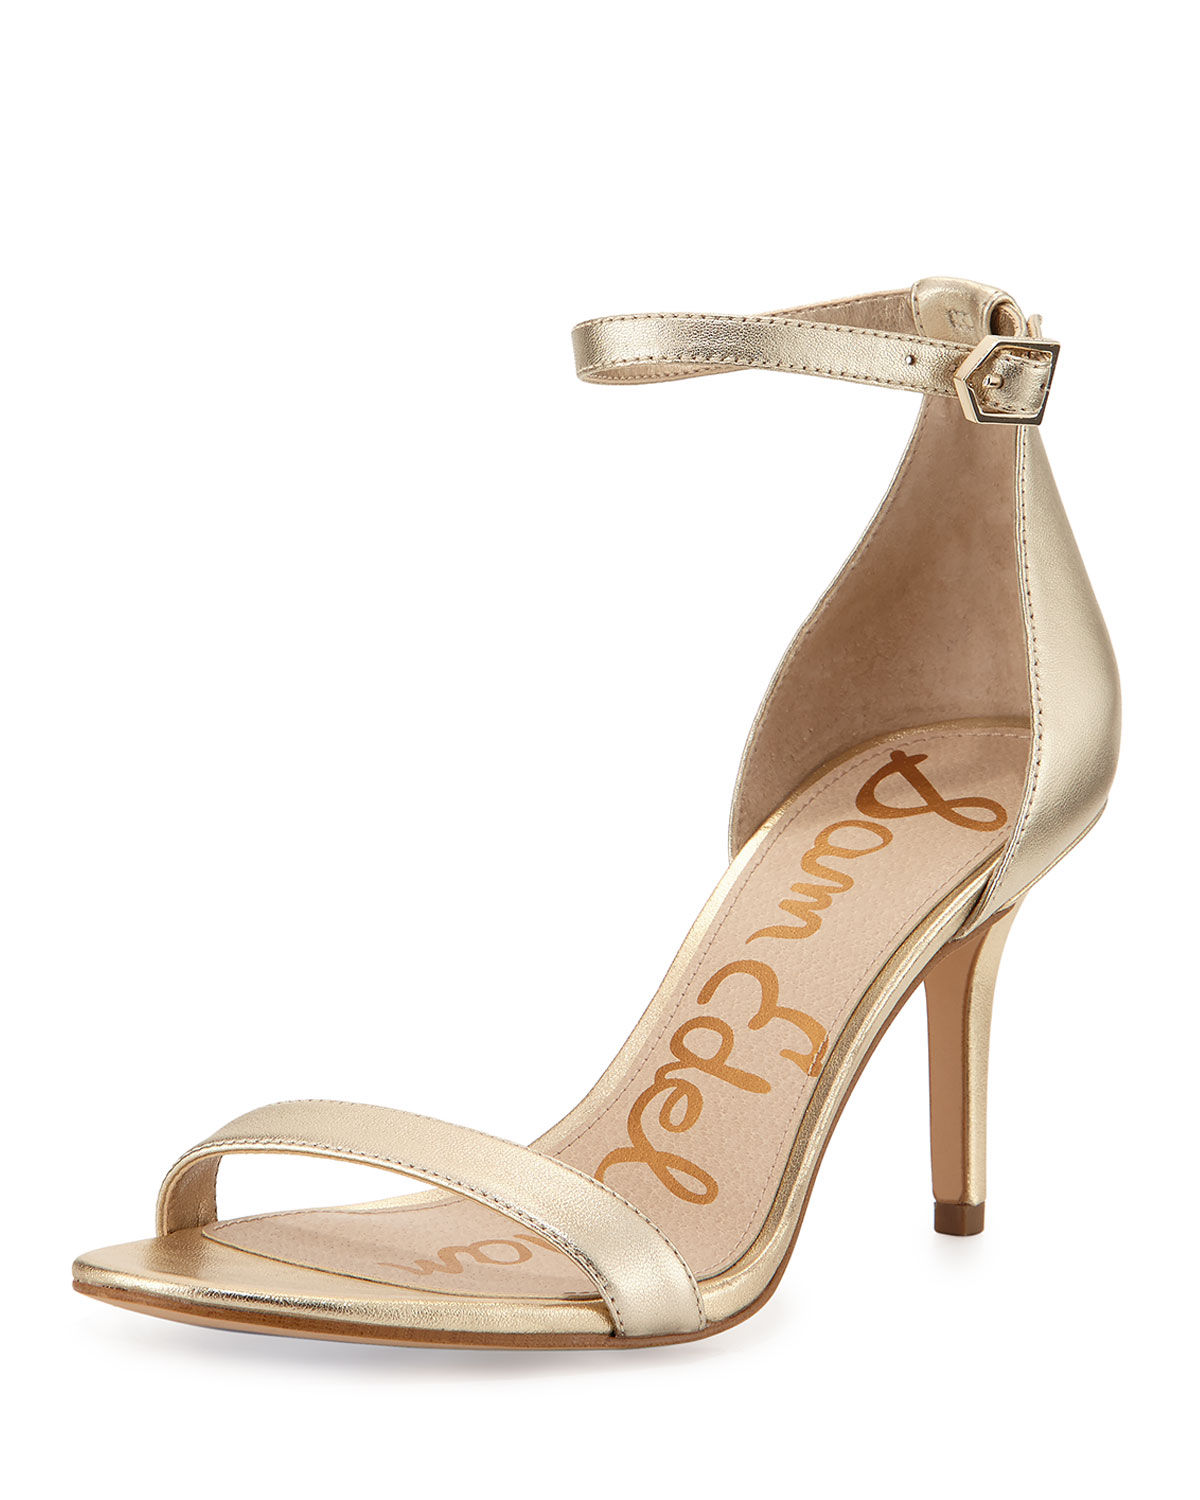 4b3f0044cc6 Sam Edelman Patti Leather Ankle-Wrap Sandal